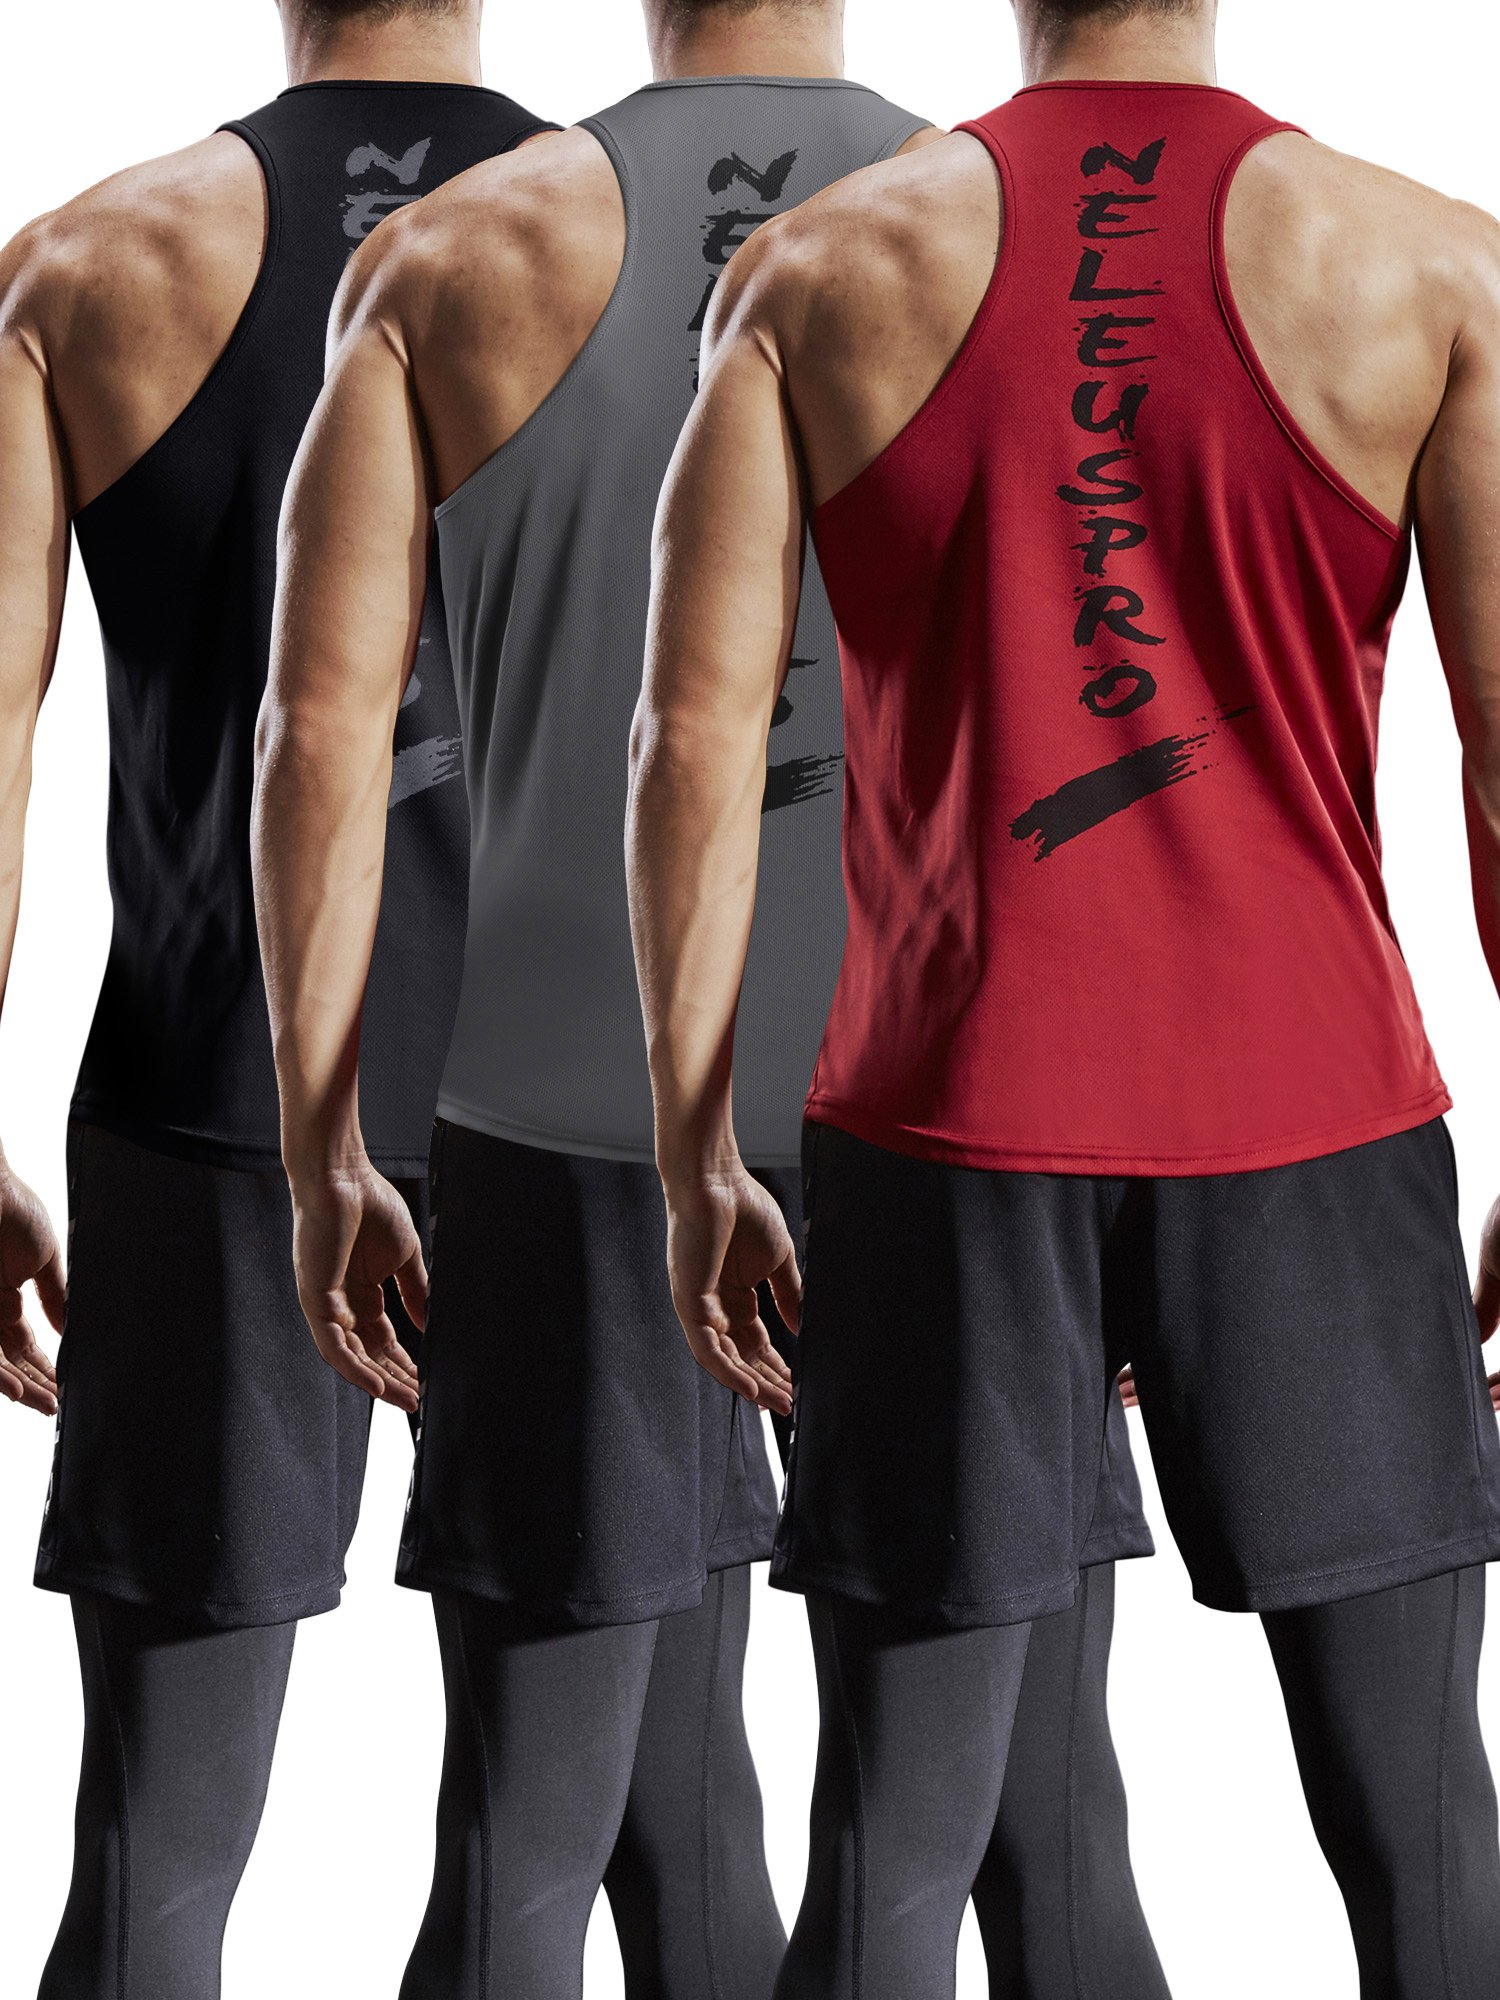 Neleus Men's 3 Pack Mesh Workout Muscle Tank Top,5007,Black,Dark Grey,Red,US XL,EU 2XL by Neleus